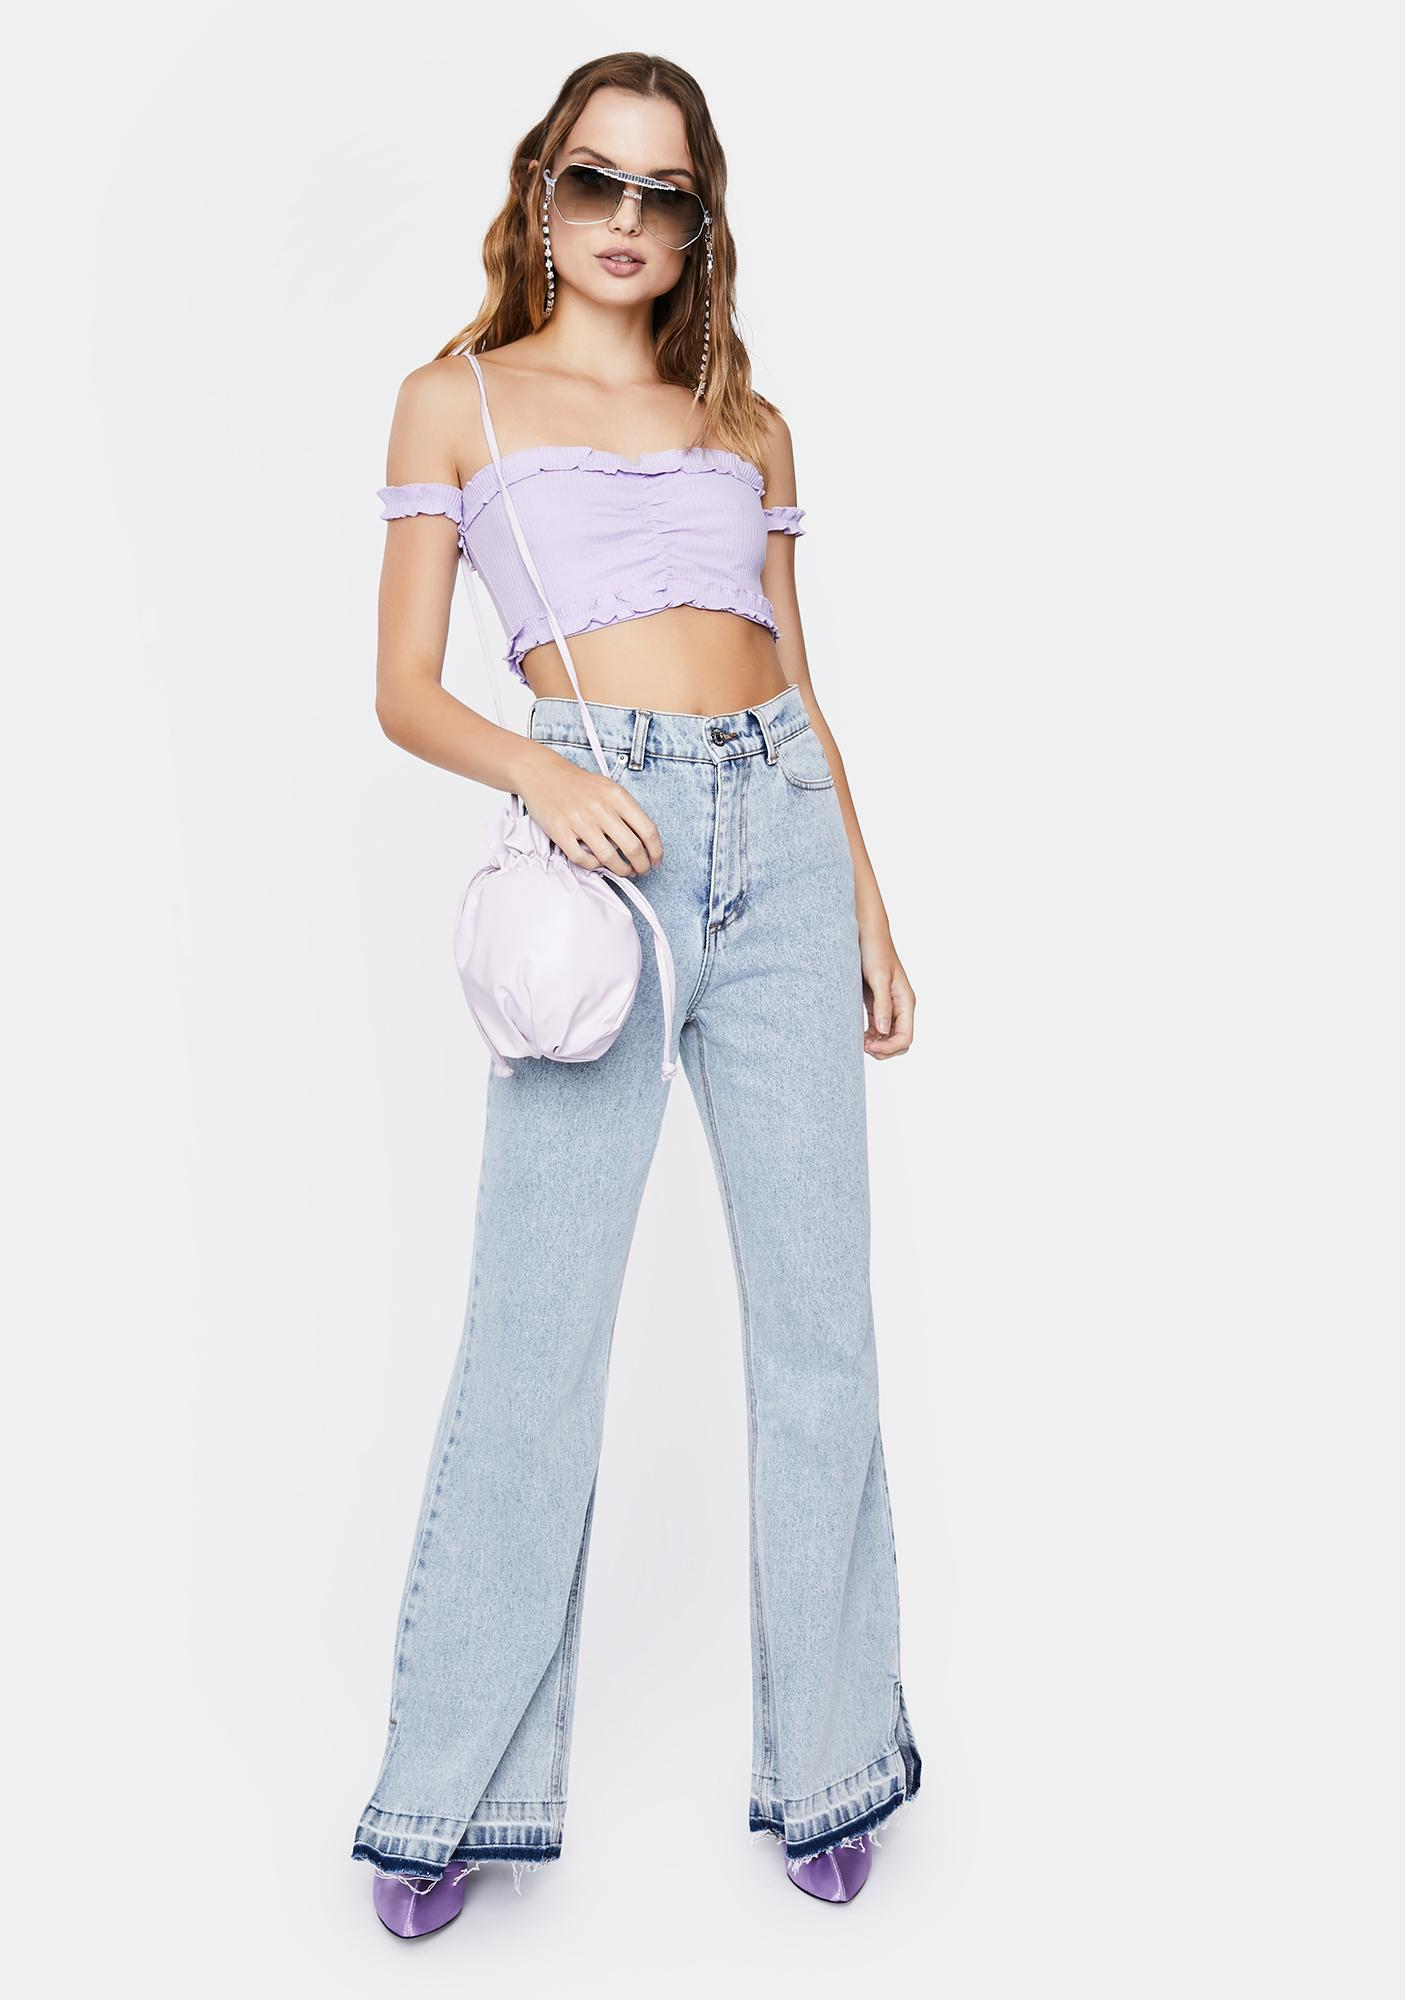 ZEMETA Lilac Off the Shoulder Top